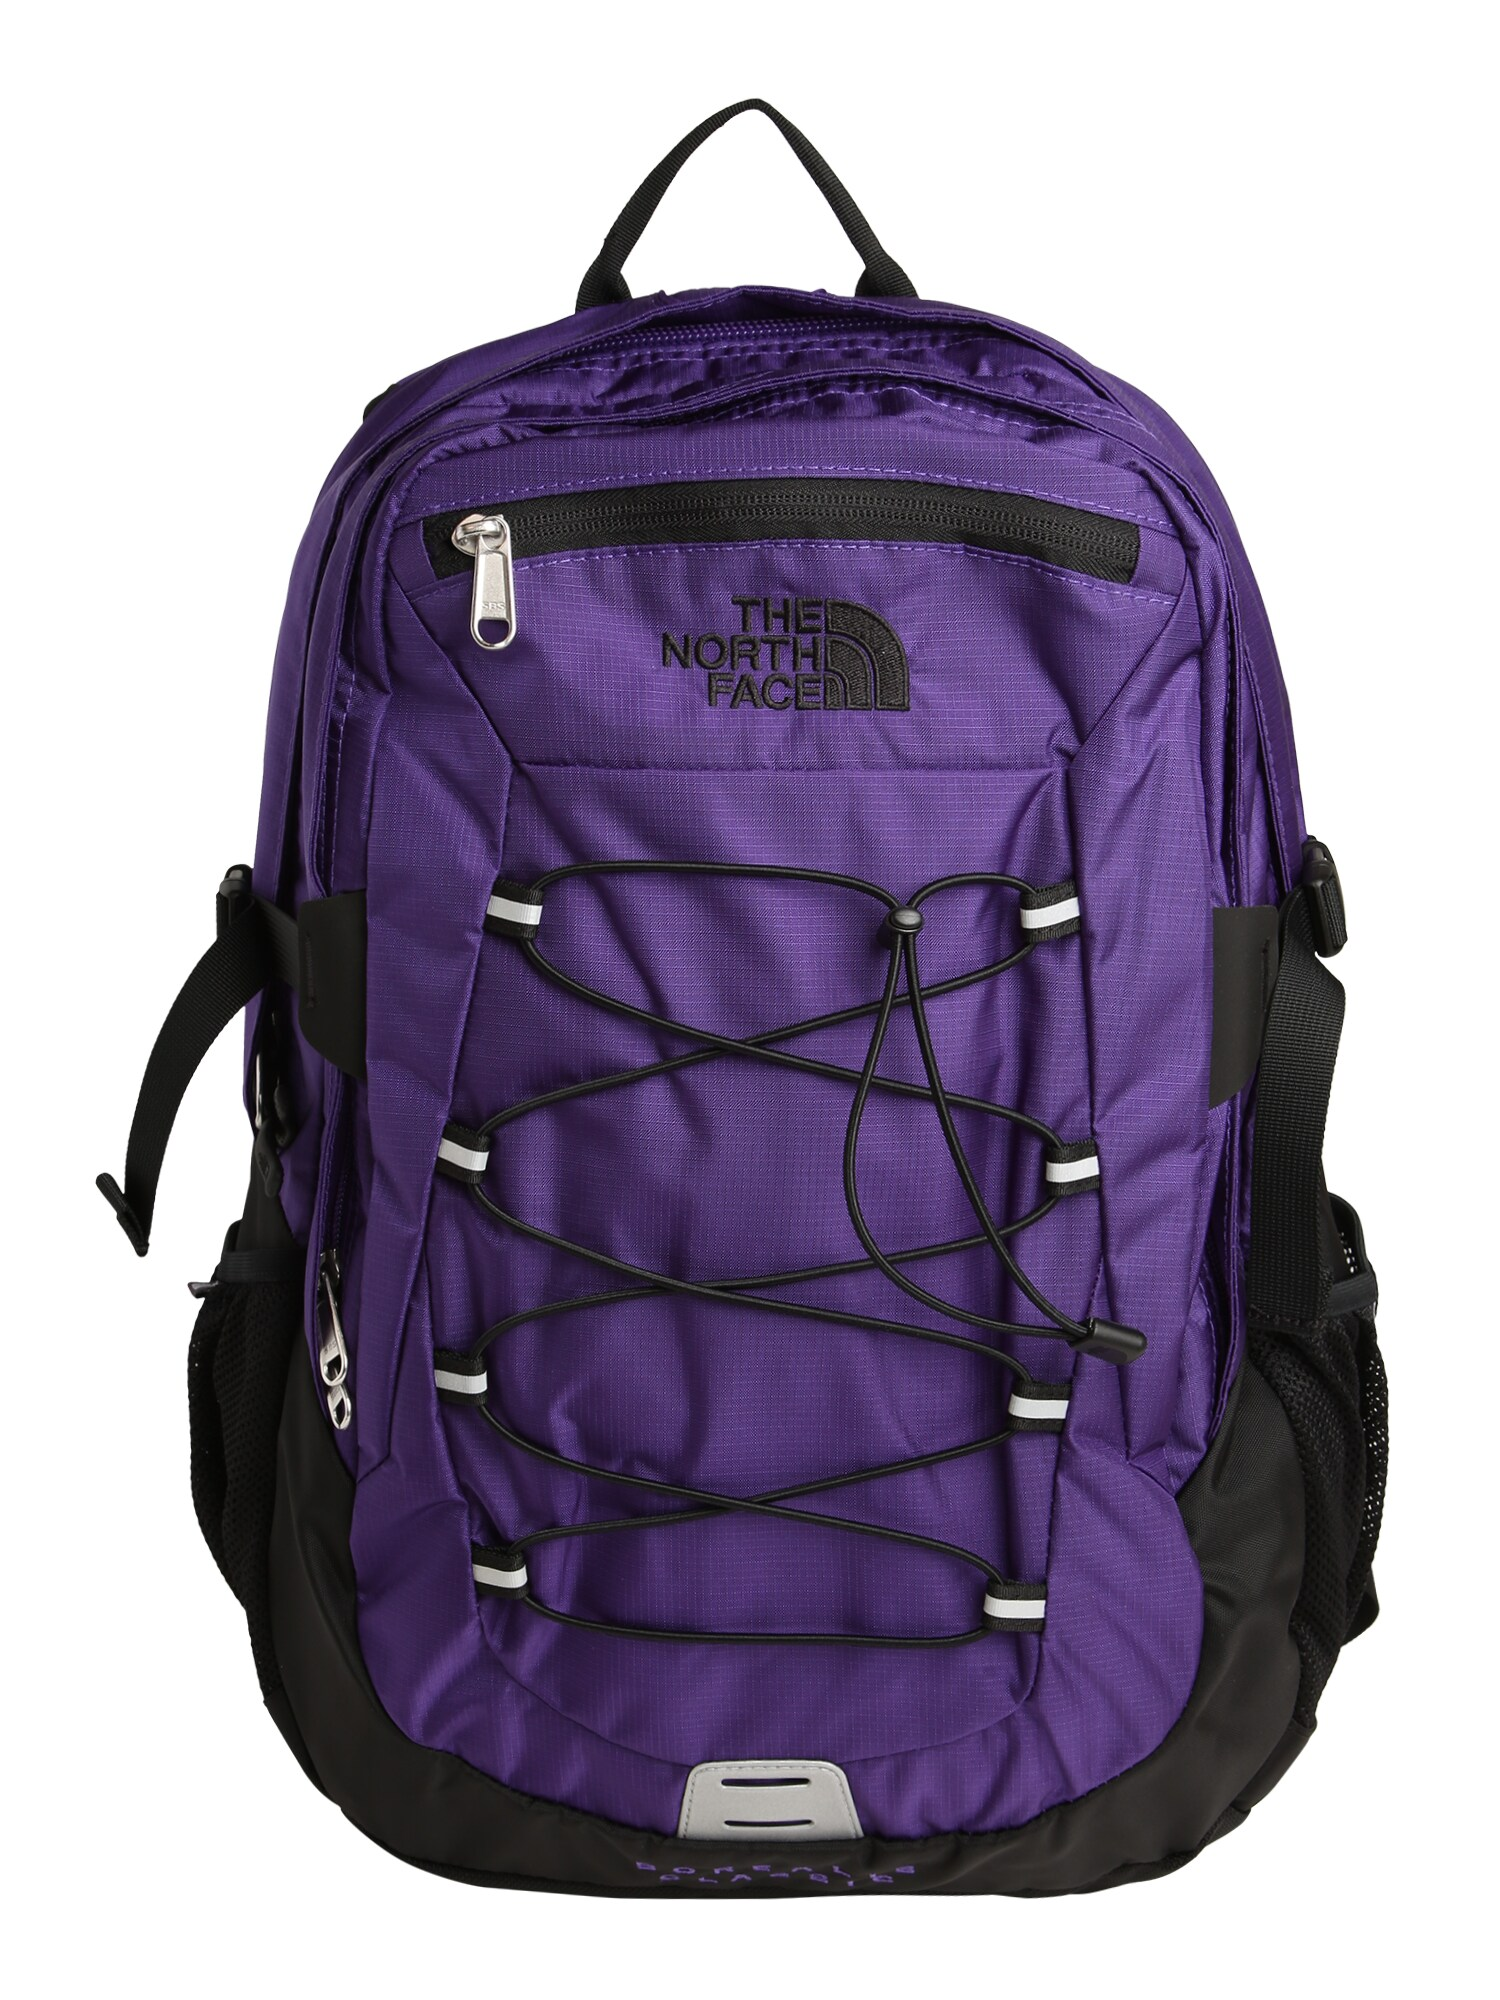 THE NORTH FACE Batoh Borealis Classic fialová The North Face